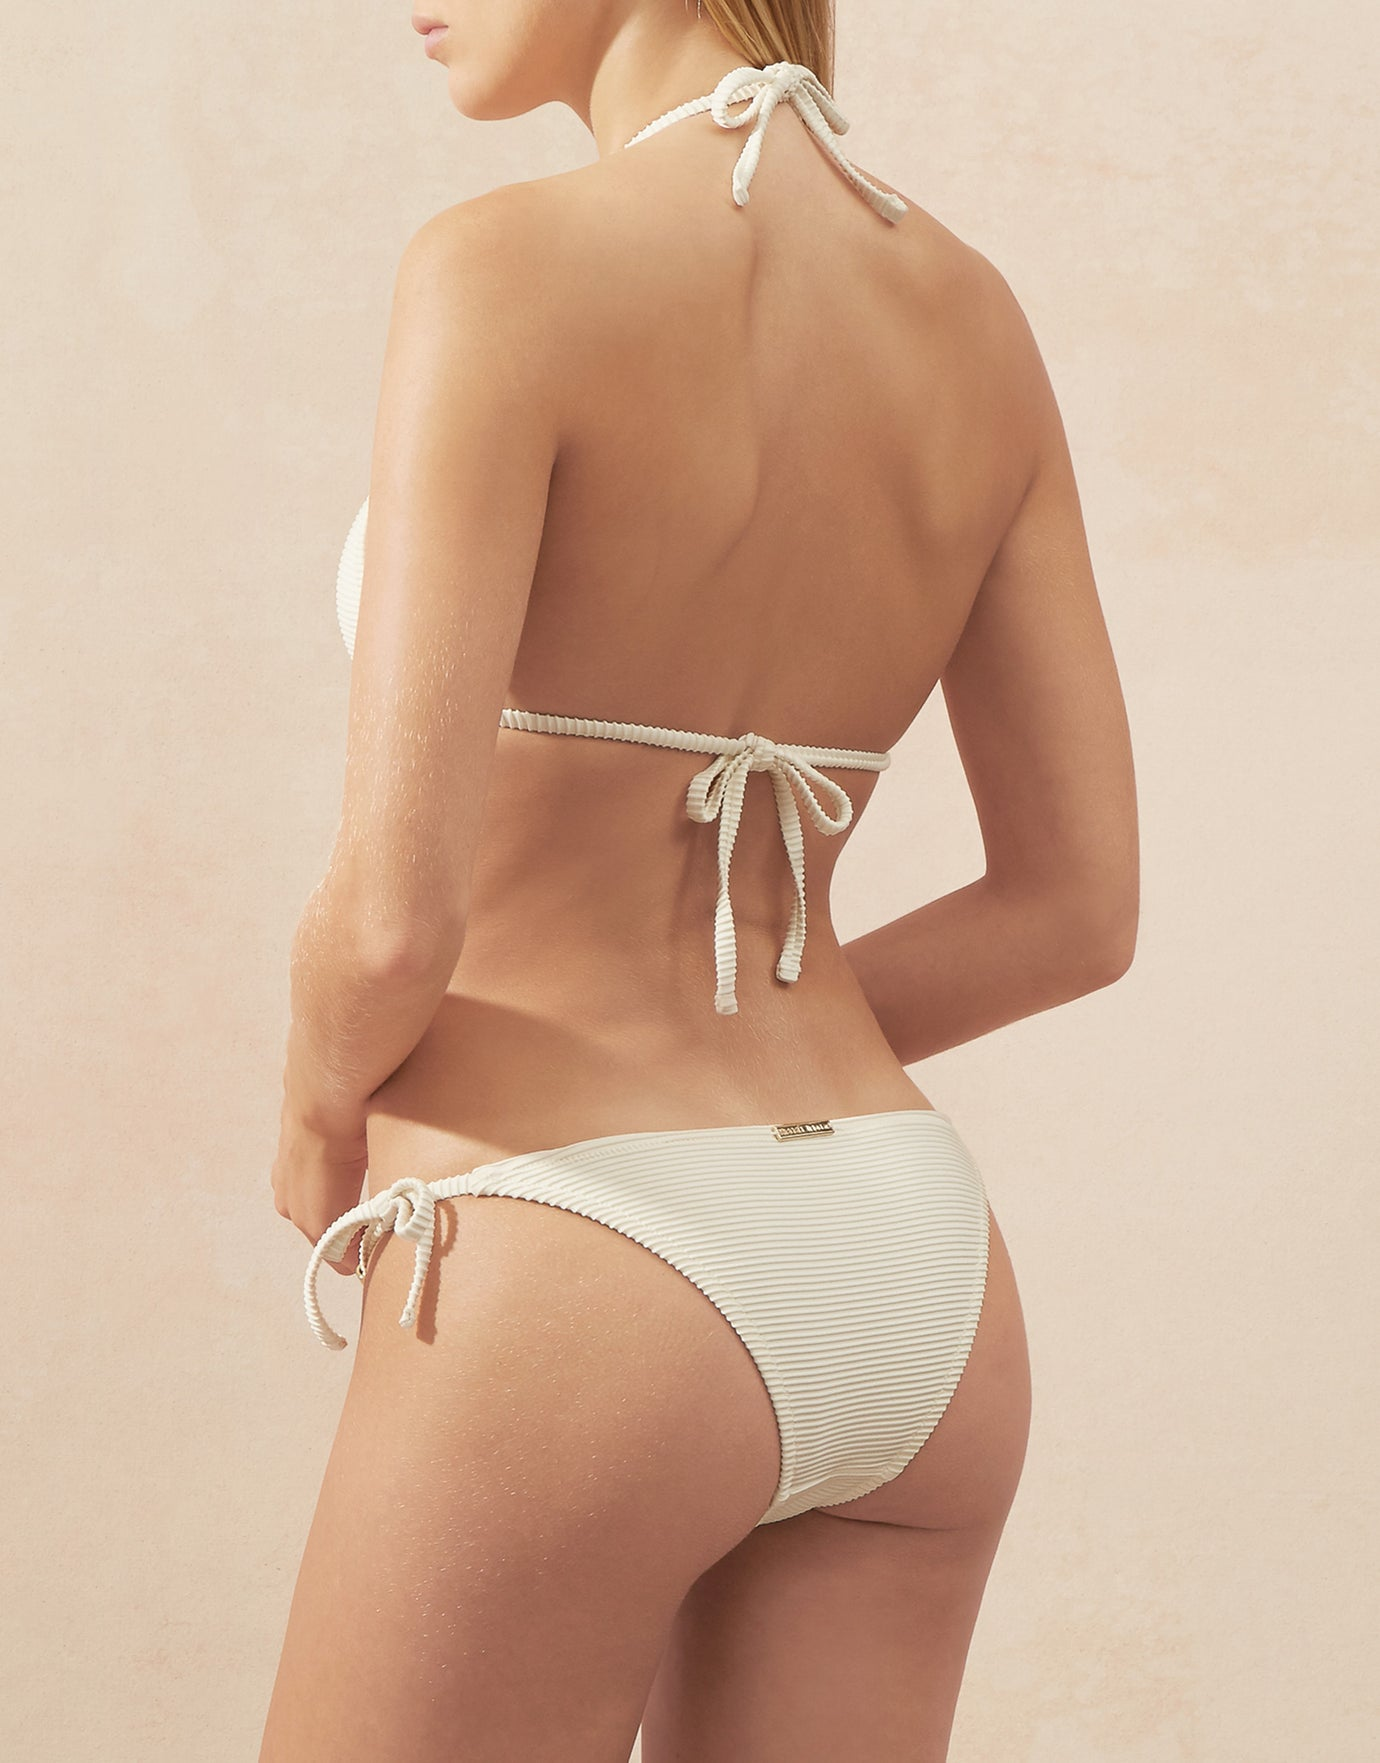 Heidi Klein Cote D'Azur Rope Tie Side Bikini Bottom - Cream